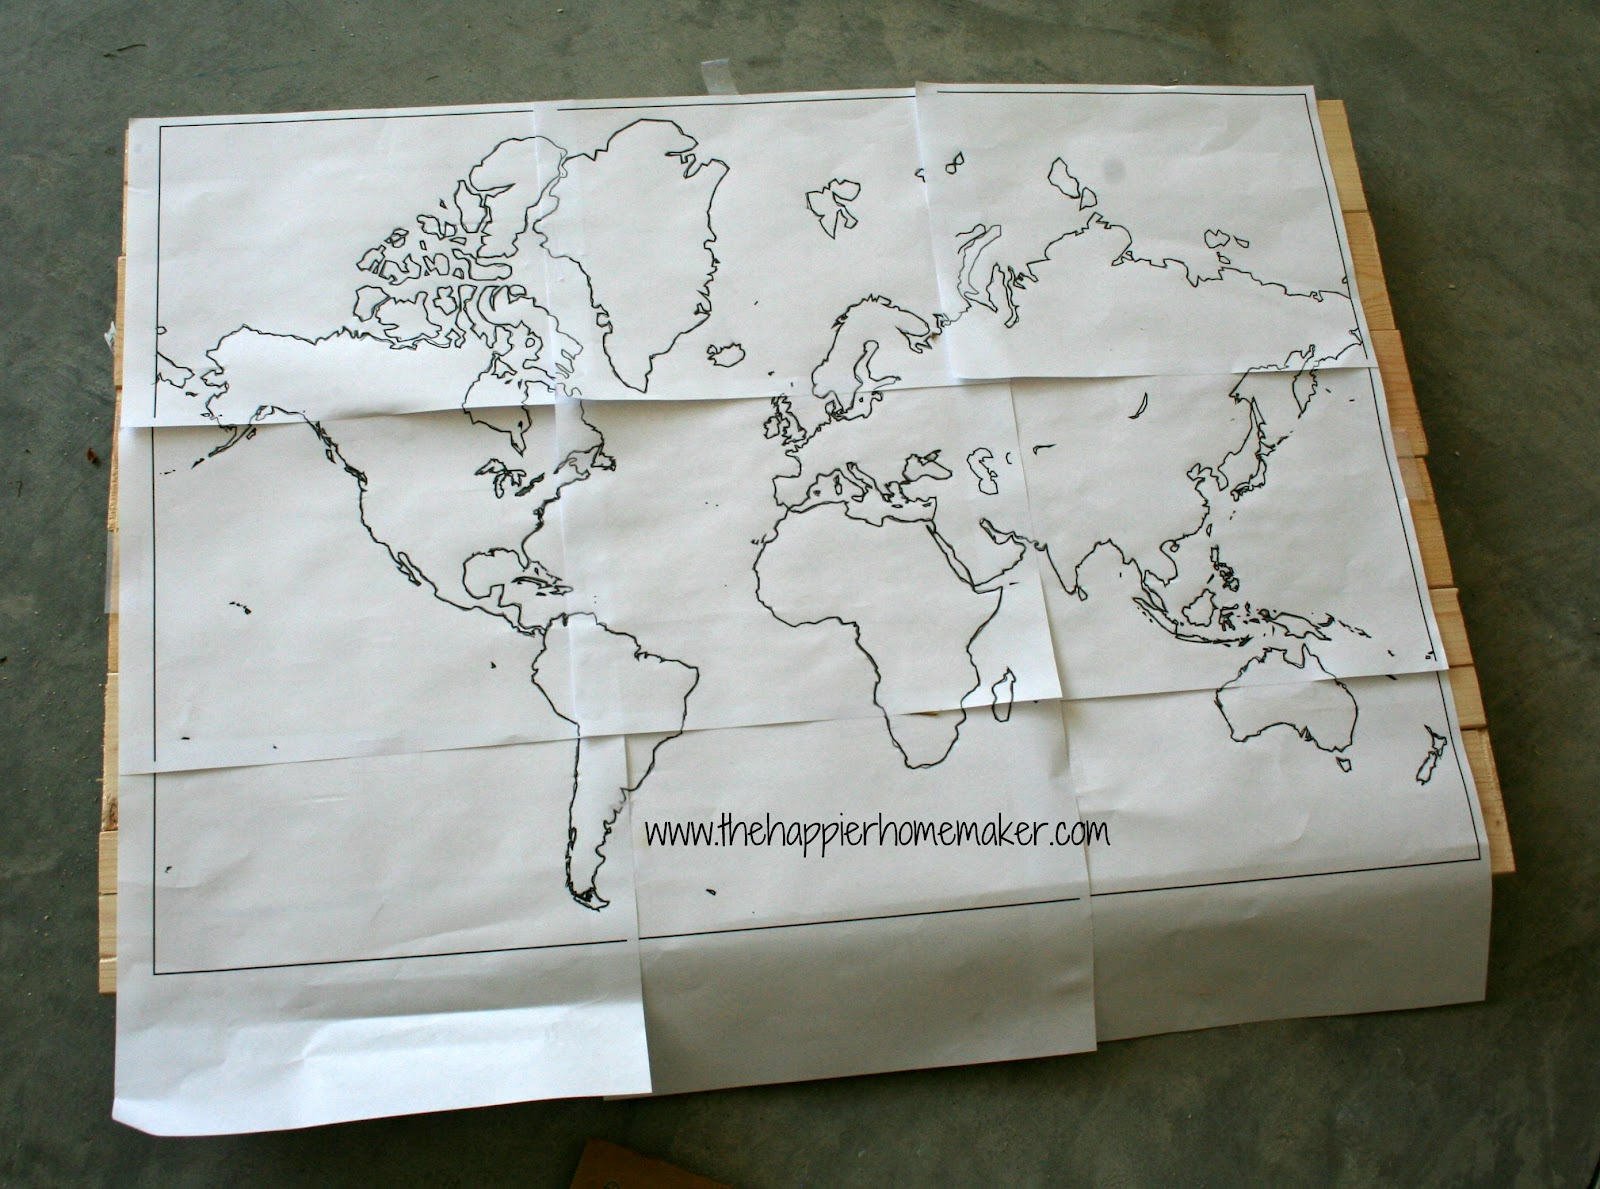 Diy wooden world map art the happier homemaker diy wooden world map art gumiabroncs Choice Image